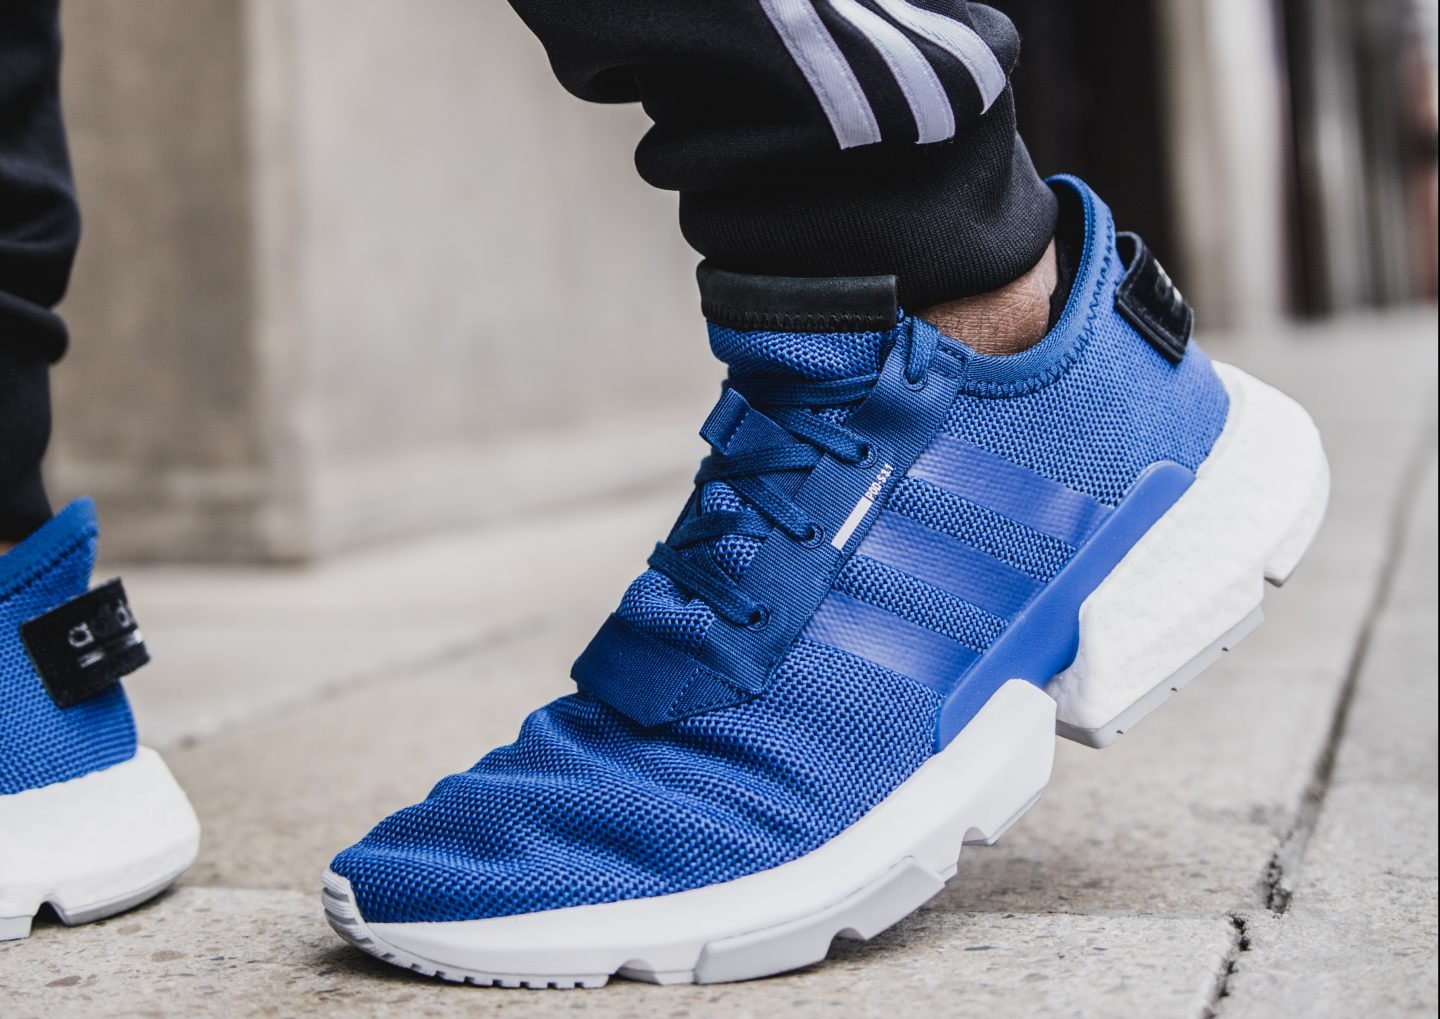 Great Alone Better Together The Launch Of Adidas Pod With Offer Second Style And Aesthetic Is One Thing When It Comes To A Sneaker But Key Factor Which Makes Shoe Truly Wearable Comfort Here Knocks Out